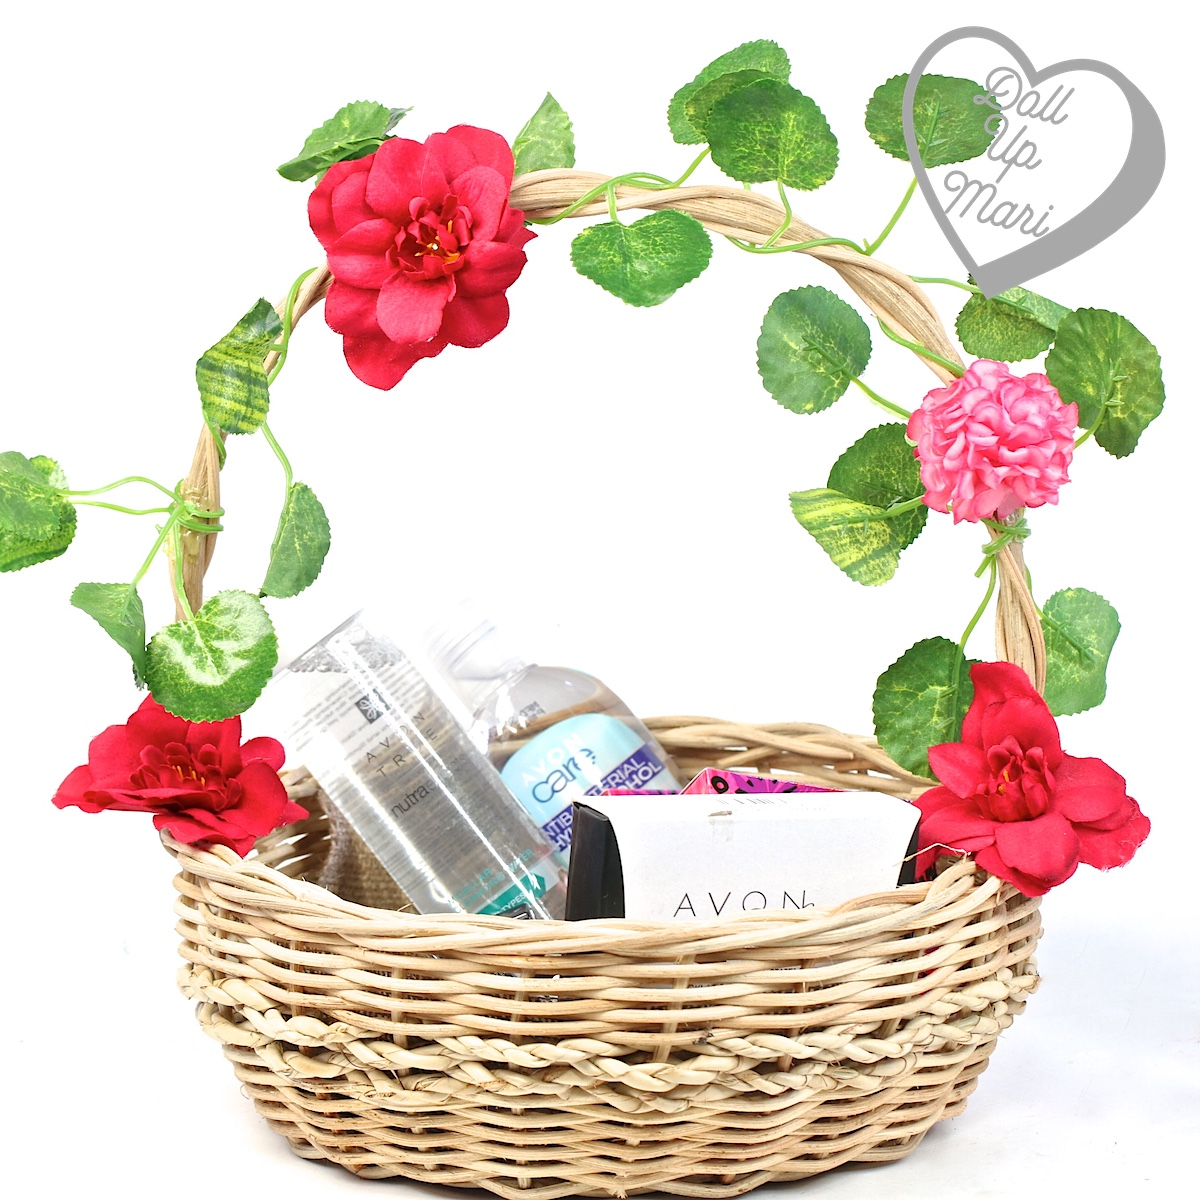 AVON Floral Wonderland Collection in a floral basket seeding kit